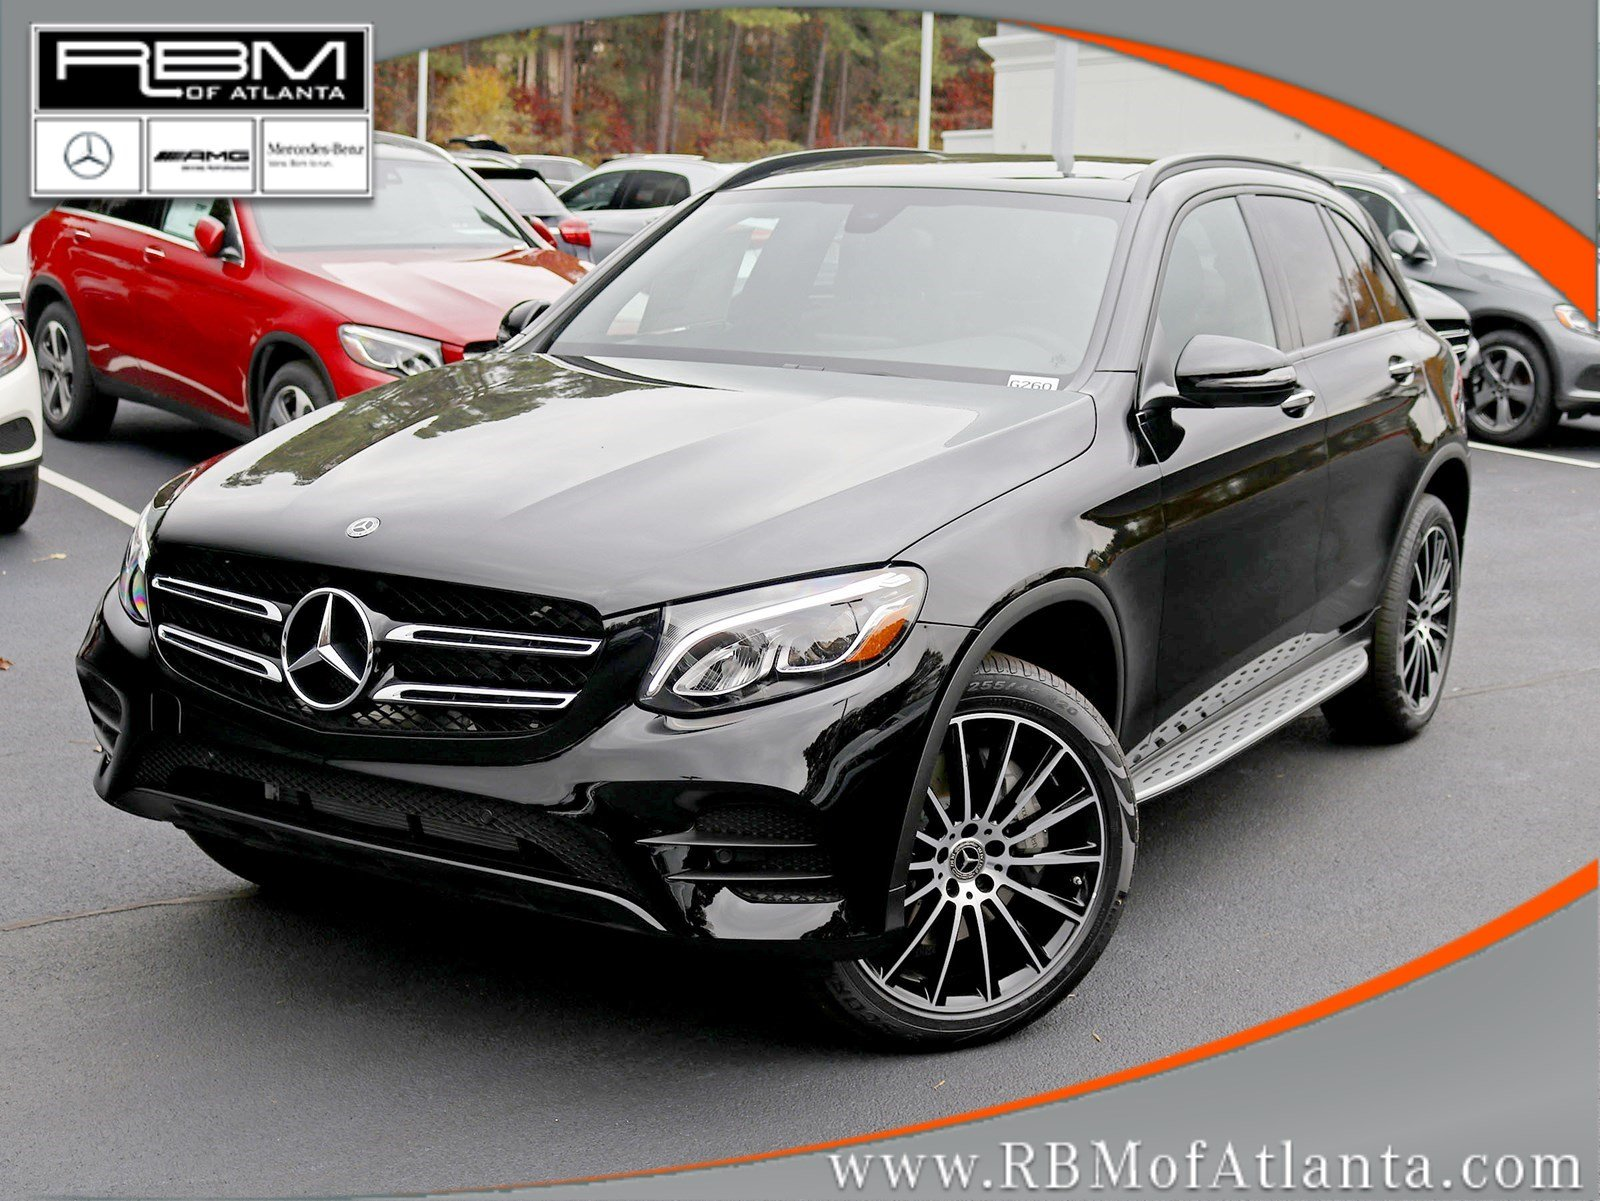 New 2019 Mercedes Benz GLC GLC 300 SUV in Atlanta G260